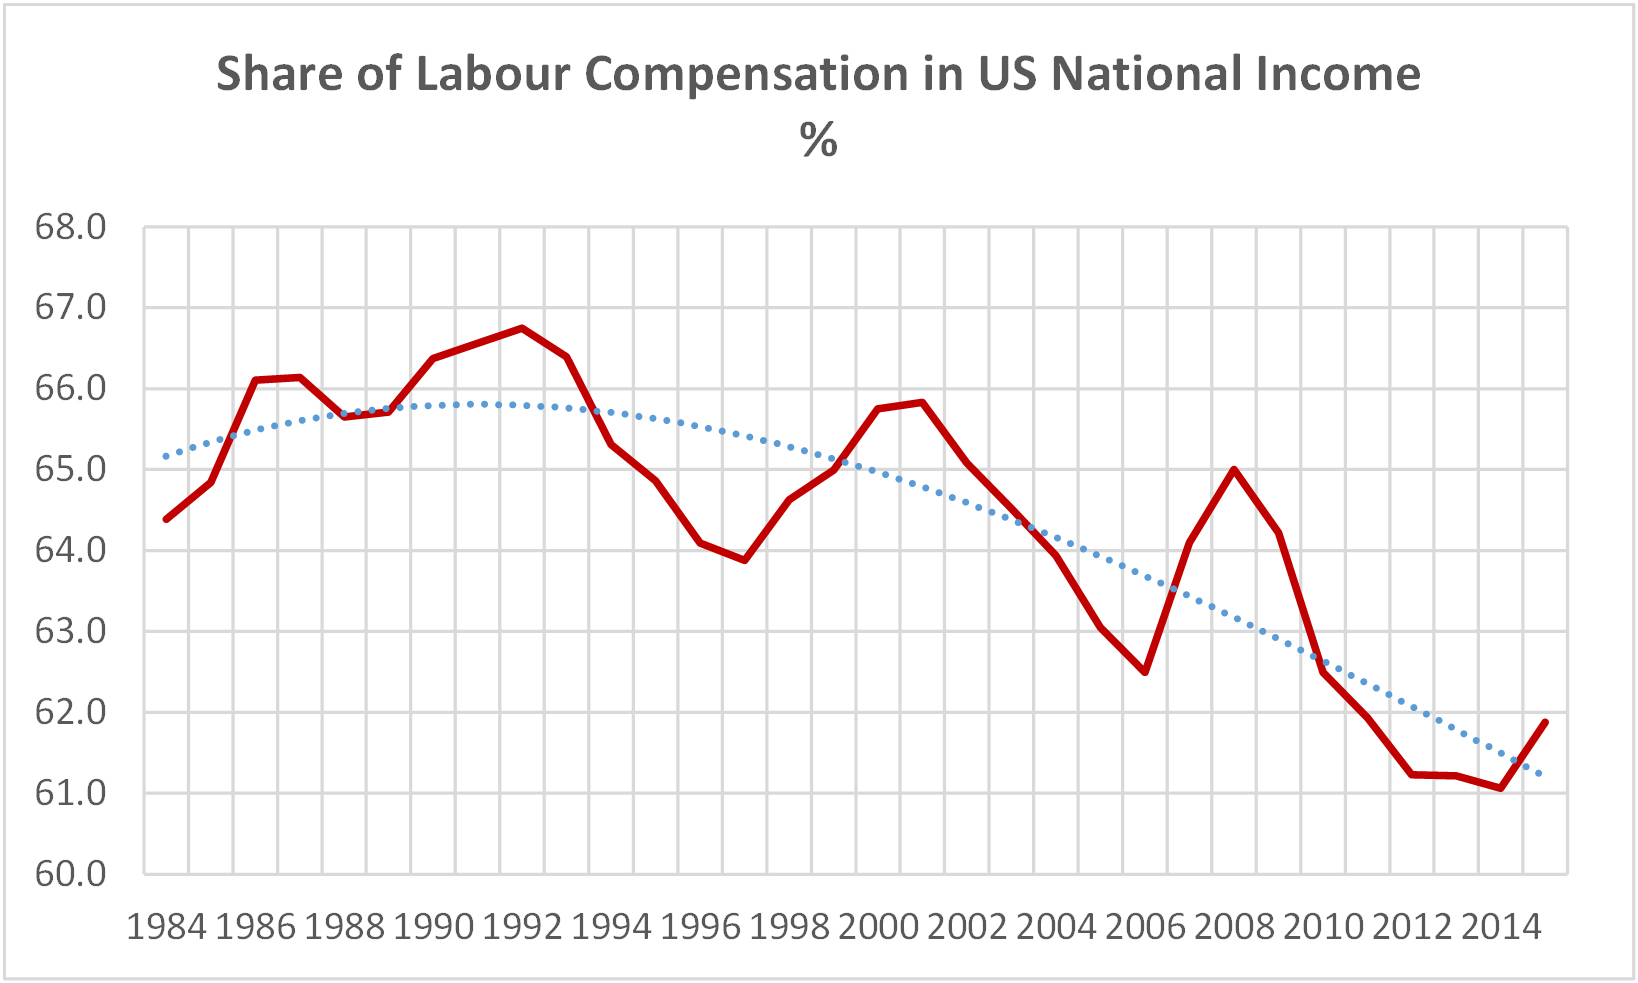 Chart 2.2 - Share of Labour Compensation in US National Income